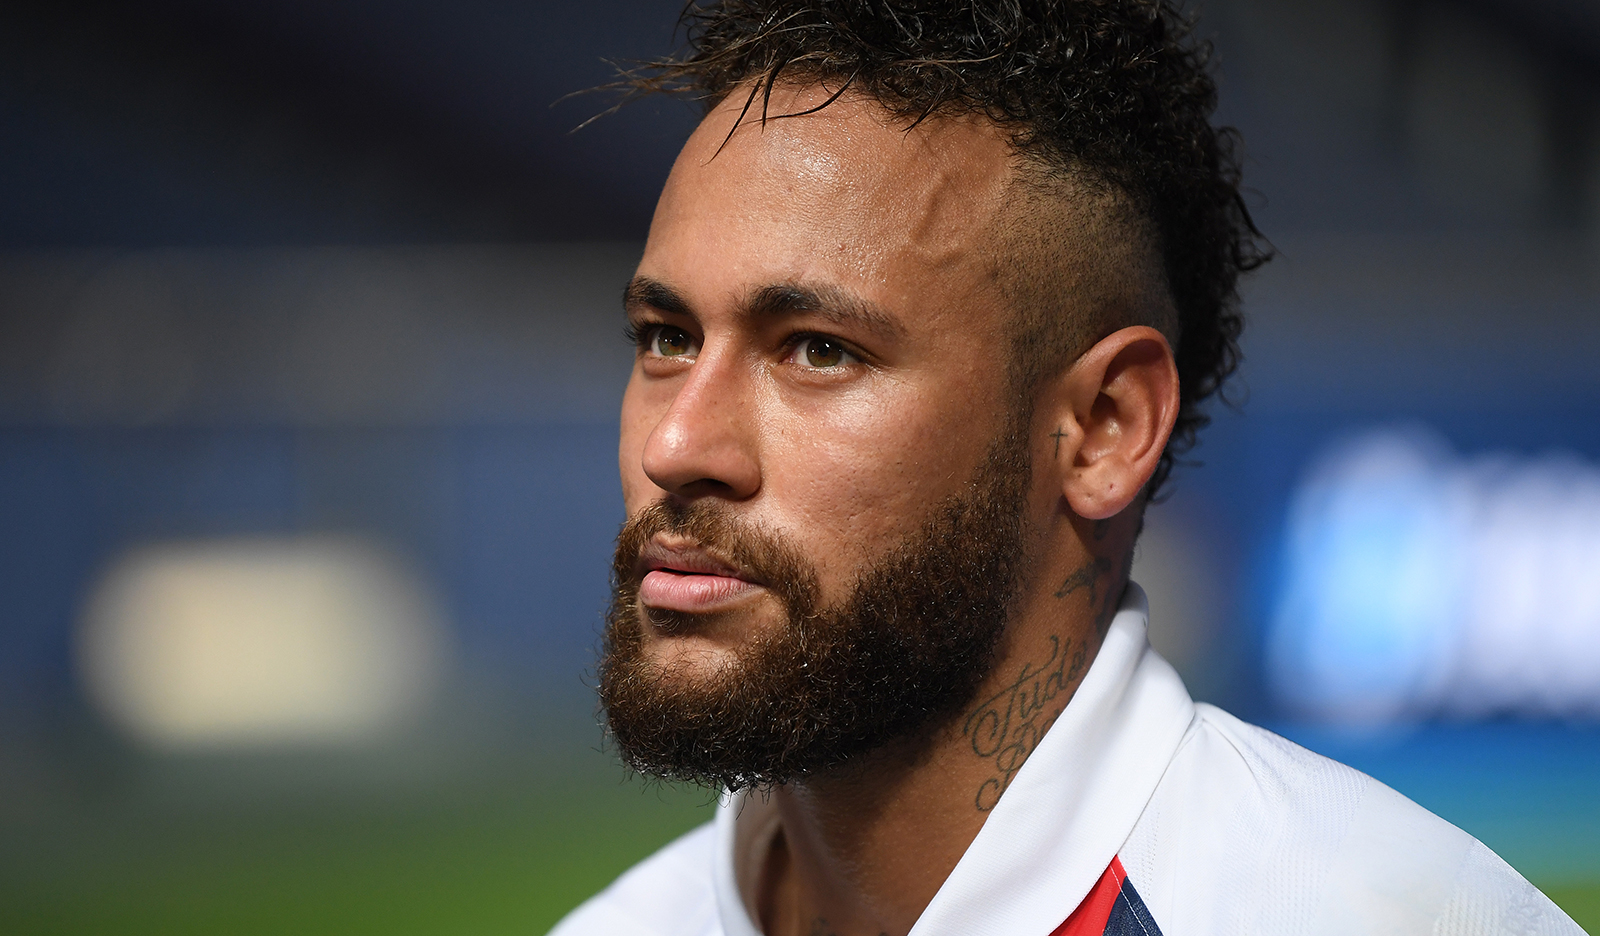 Neymar of Paris Saint-Germain is interviewed after the UEFA Champions League quarter final match between Atalanta and PSG at Estadio do Sport Lisboa e Benfica on August 12, in Lisbon, Portugal.